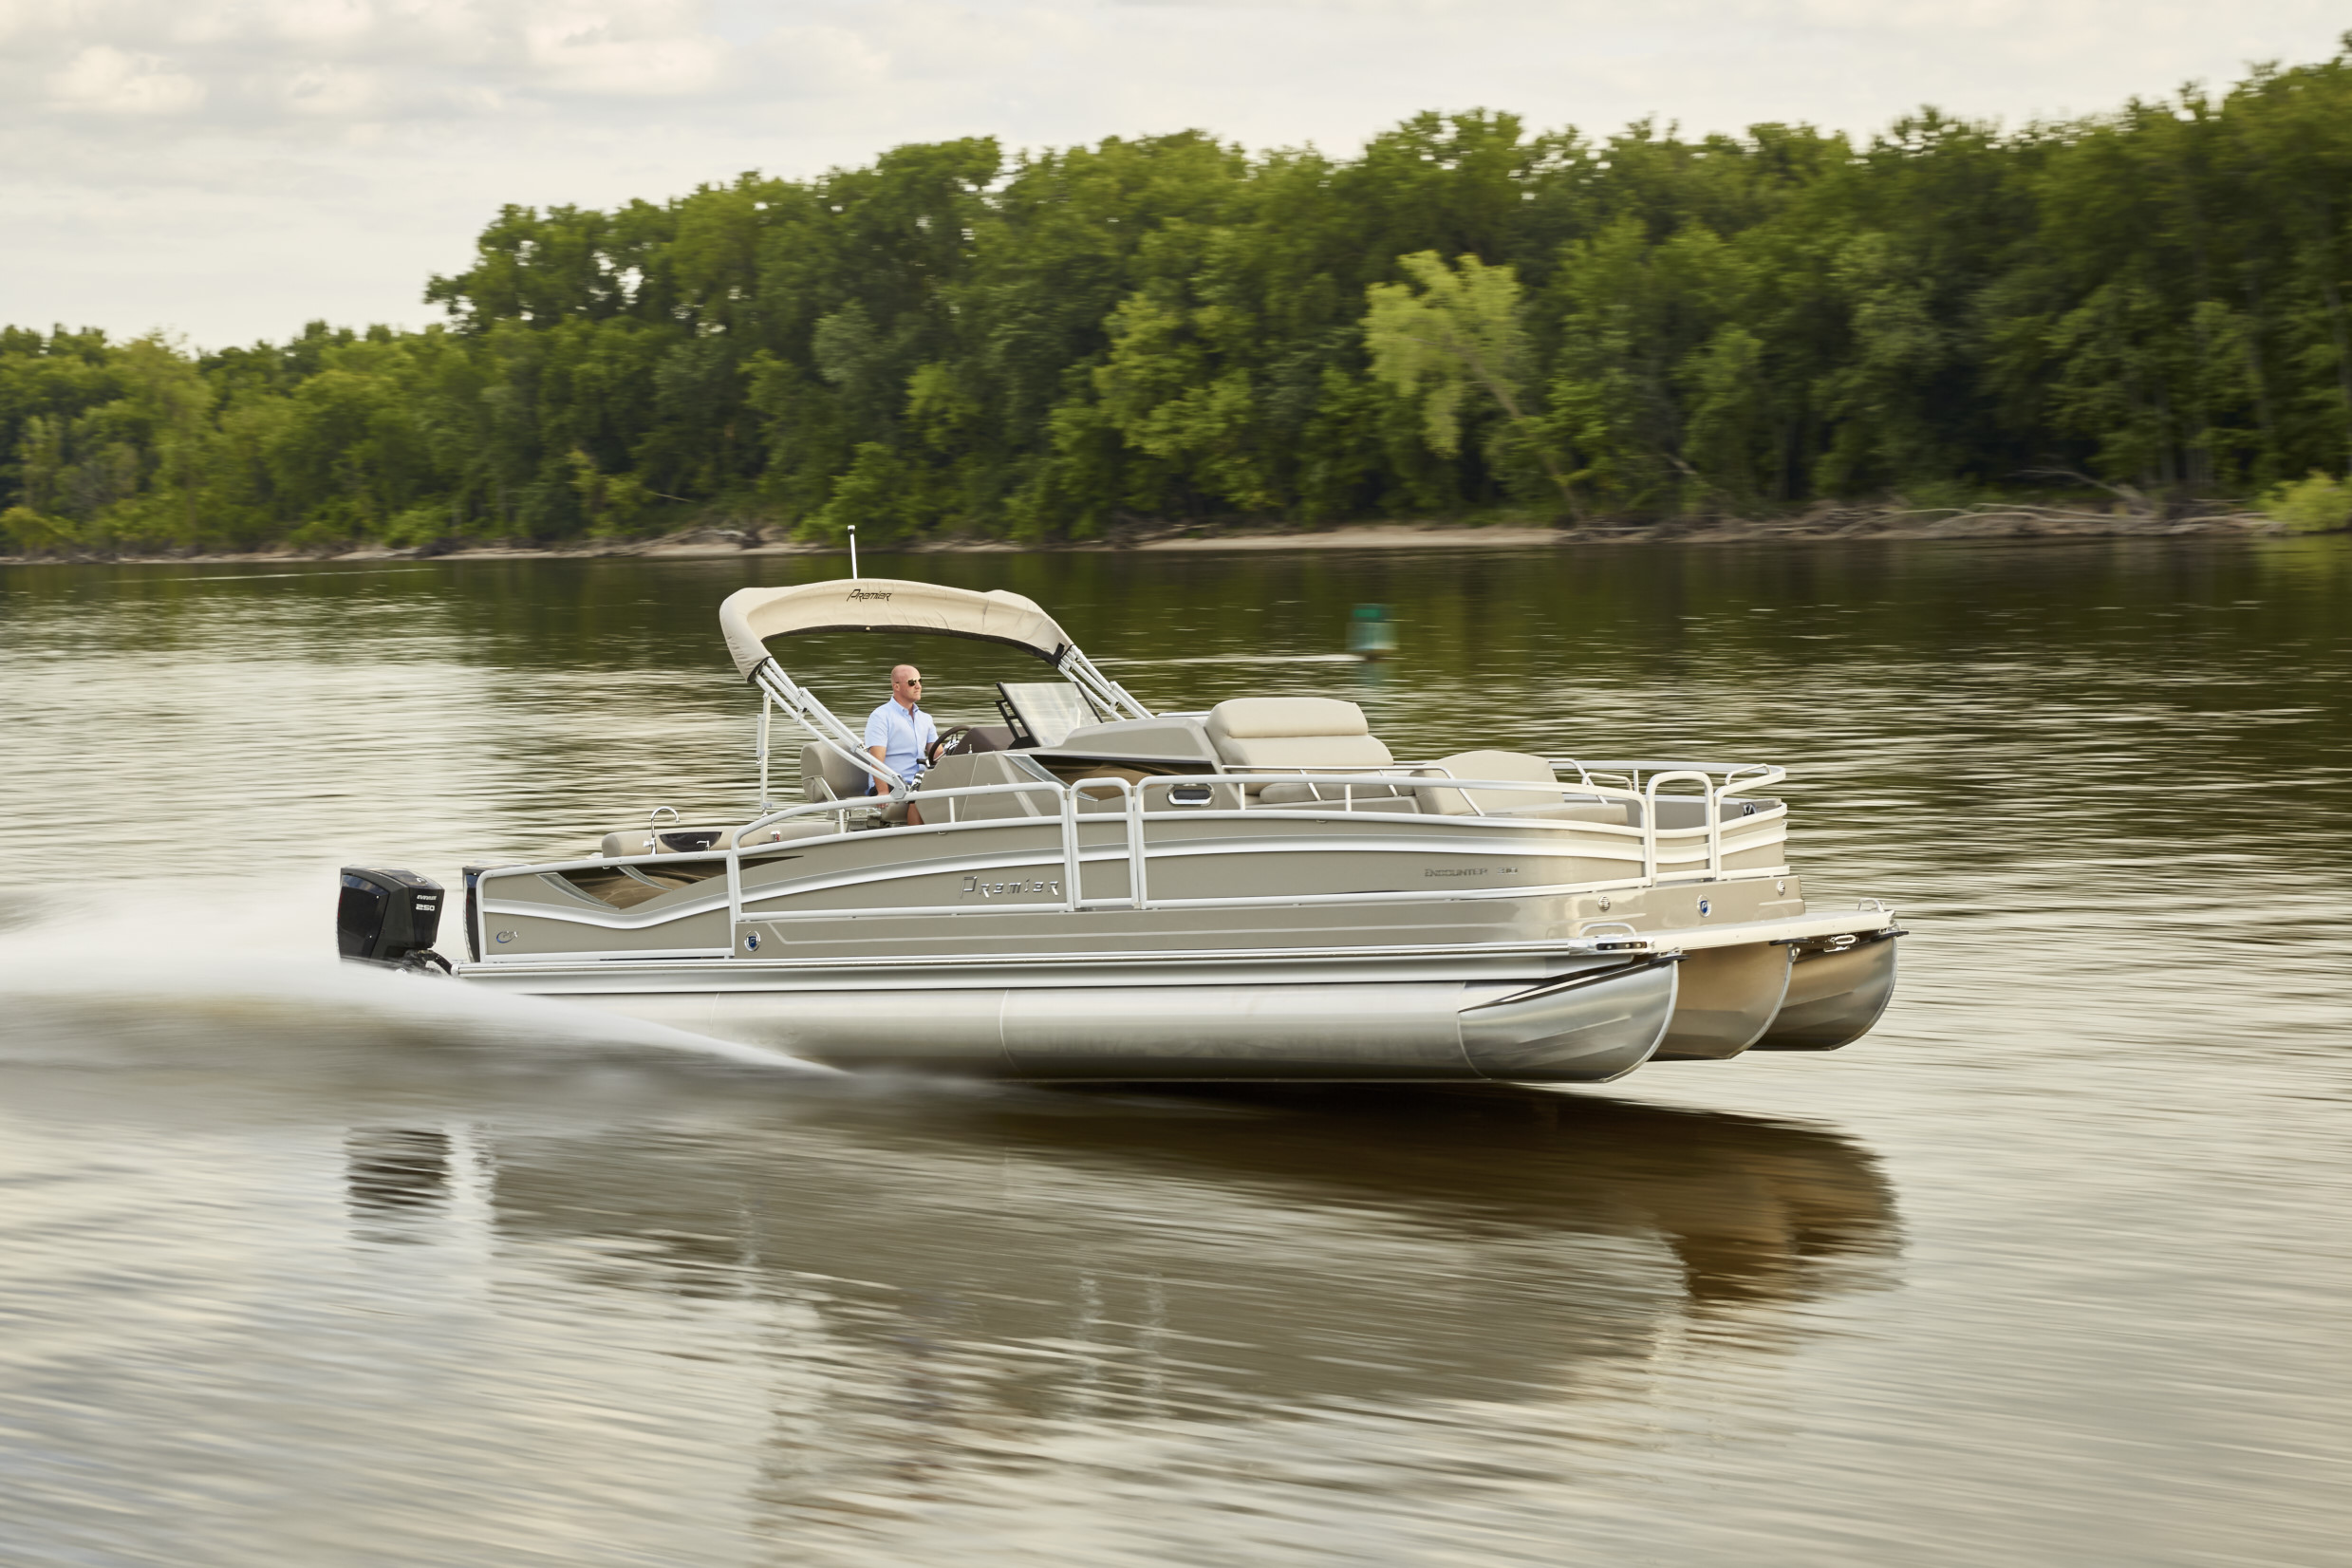 carver sales yacht xlarge search temptation cruiser cabins cabin aft boats